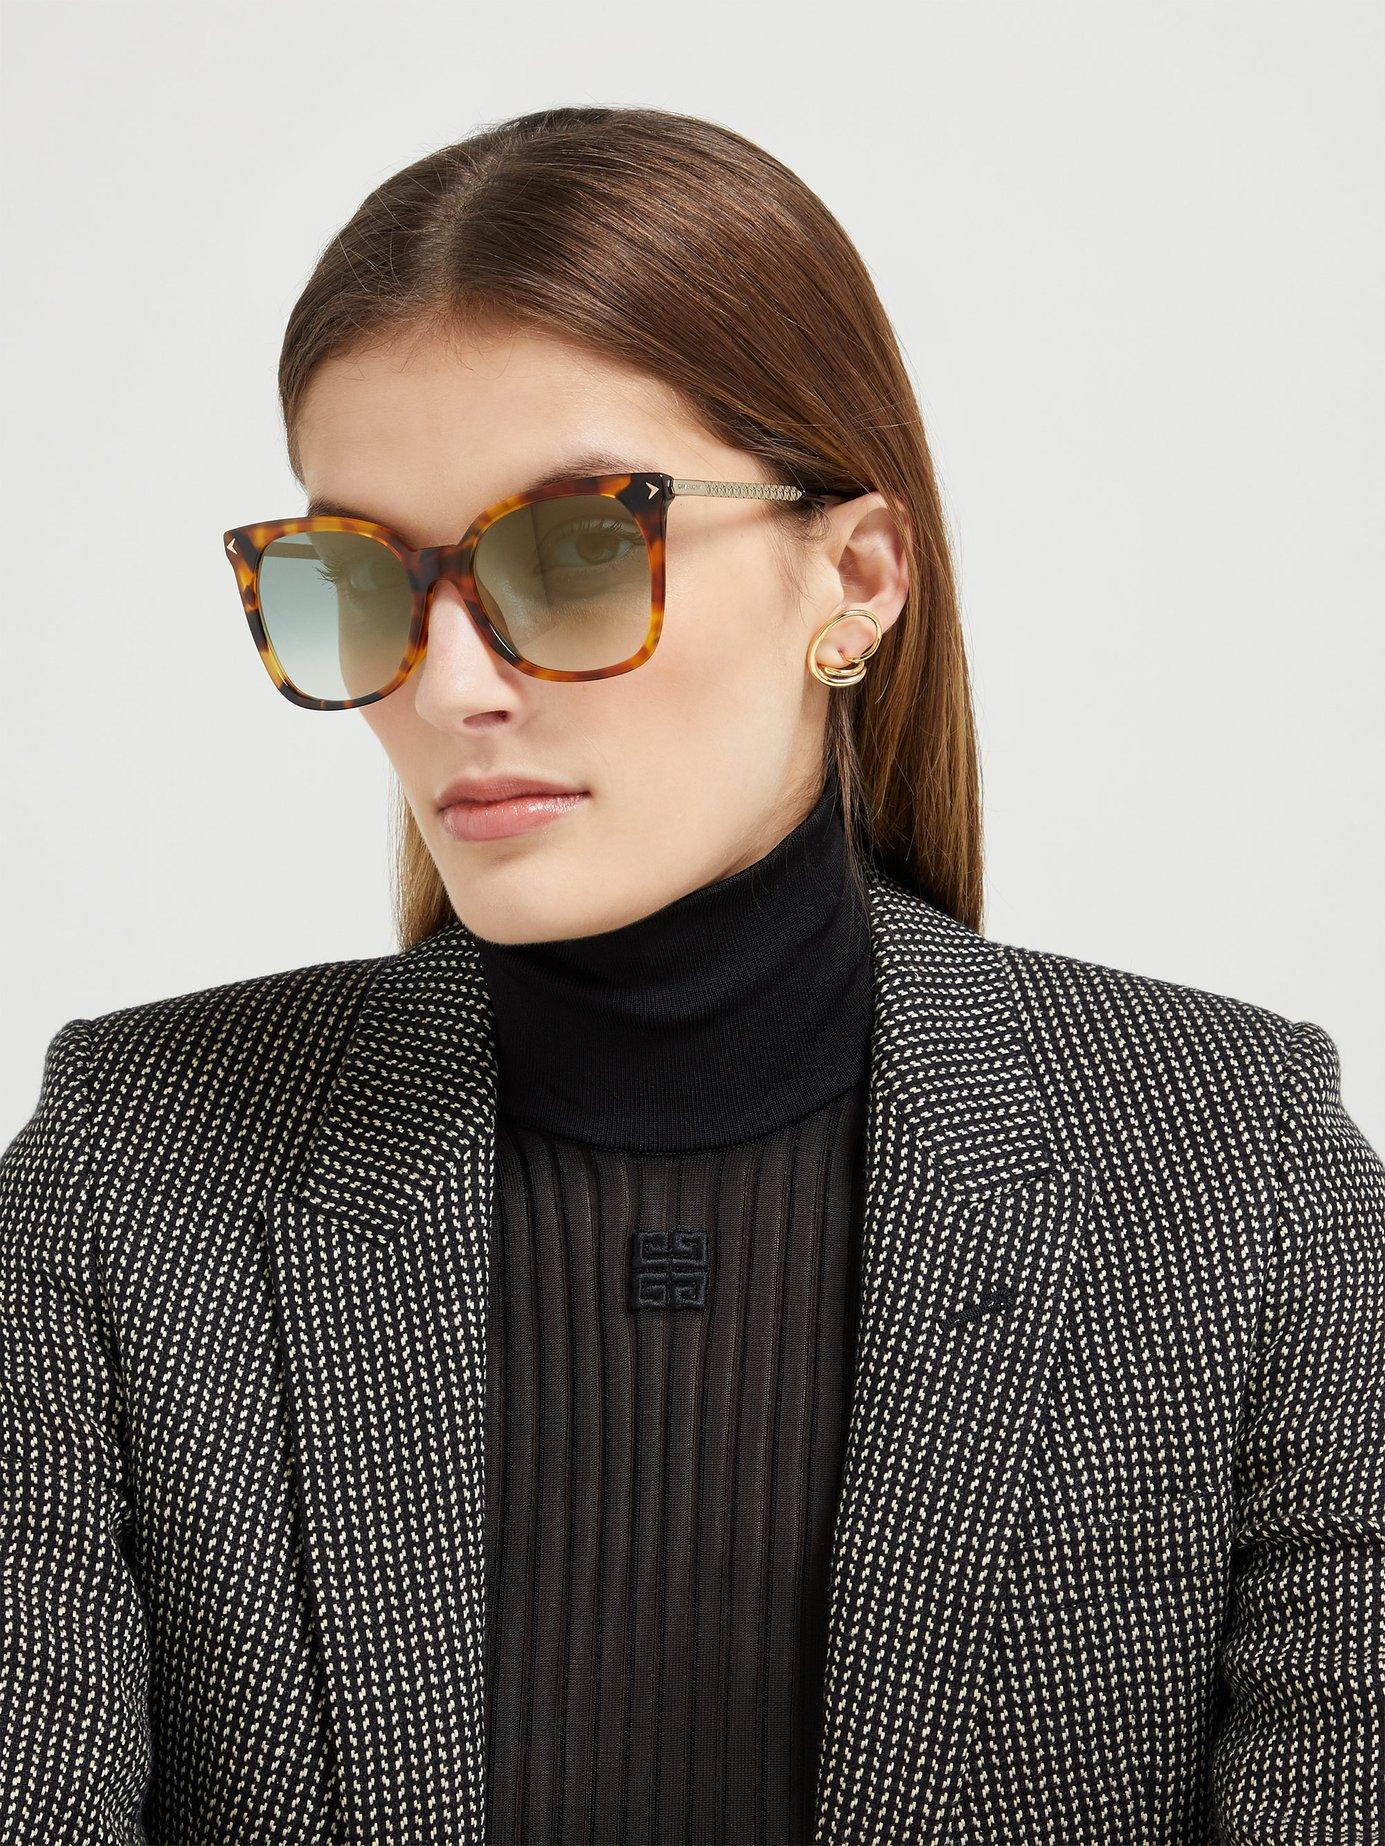 8c6d920282e Givenchy - Multicolor Oversized Square Frame Sunglasses - Lyst. View  fullscreen